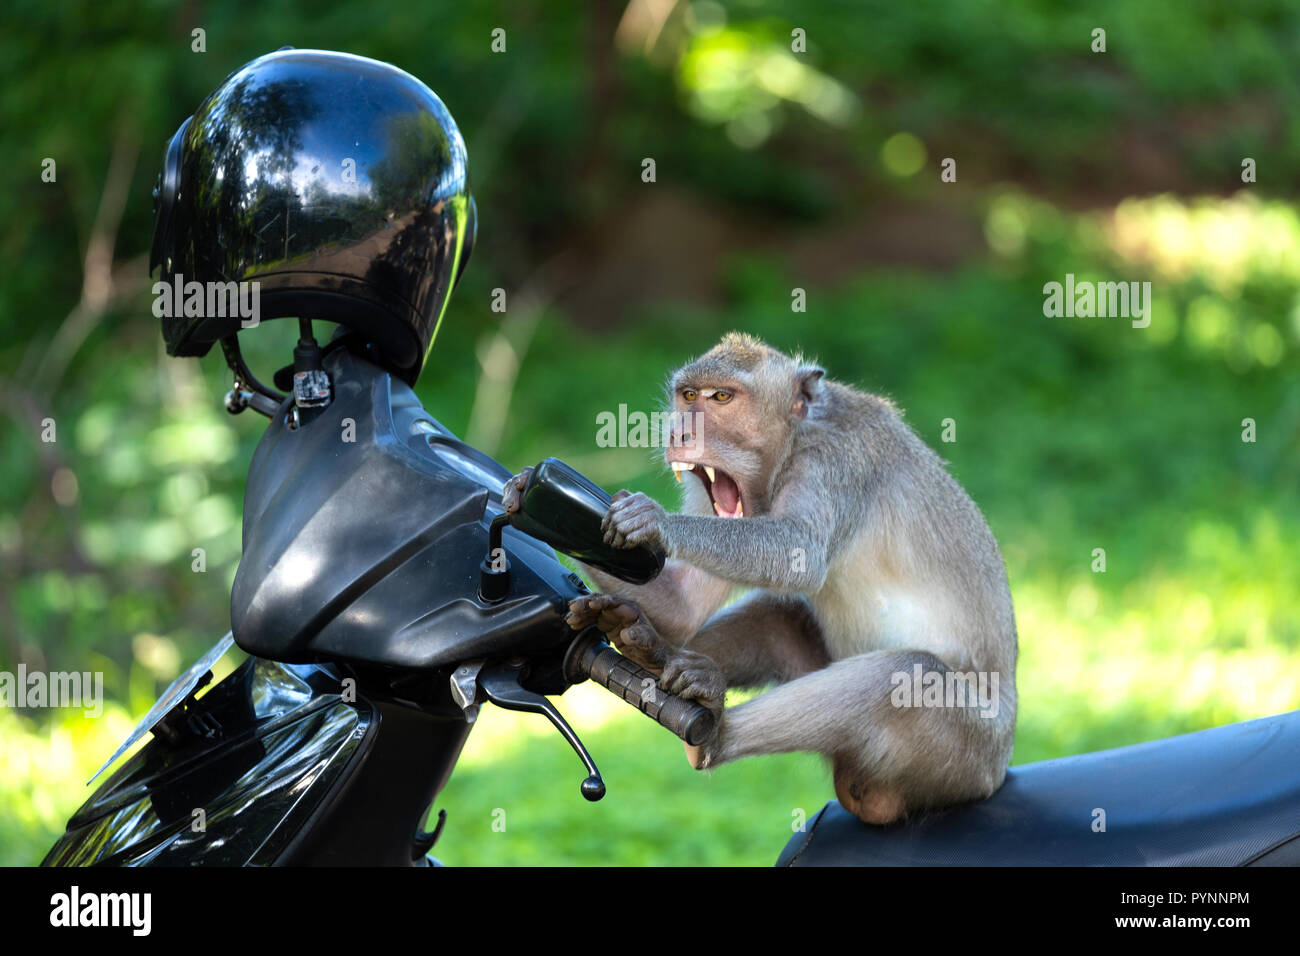 Crazy and funny monkey sitting on a motorbike and looking himself in the mirror.